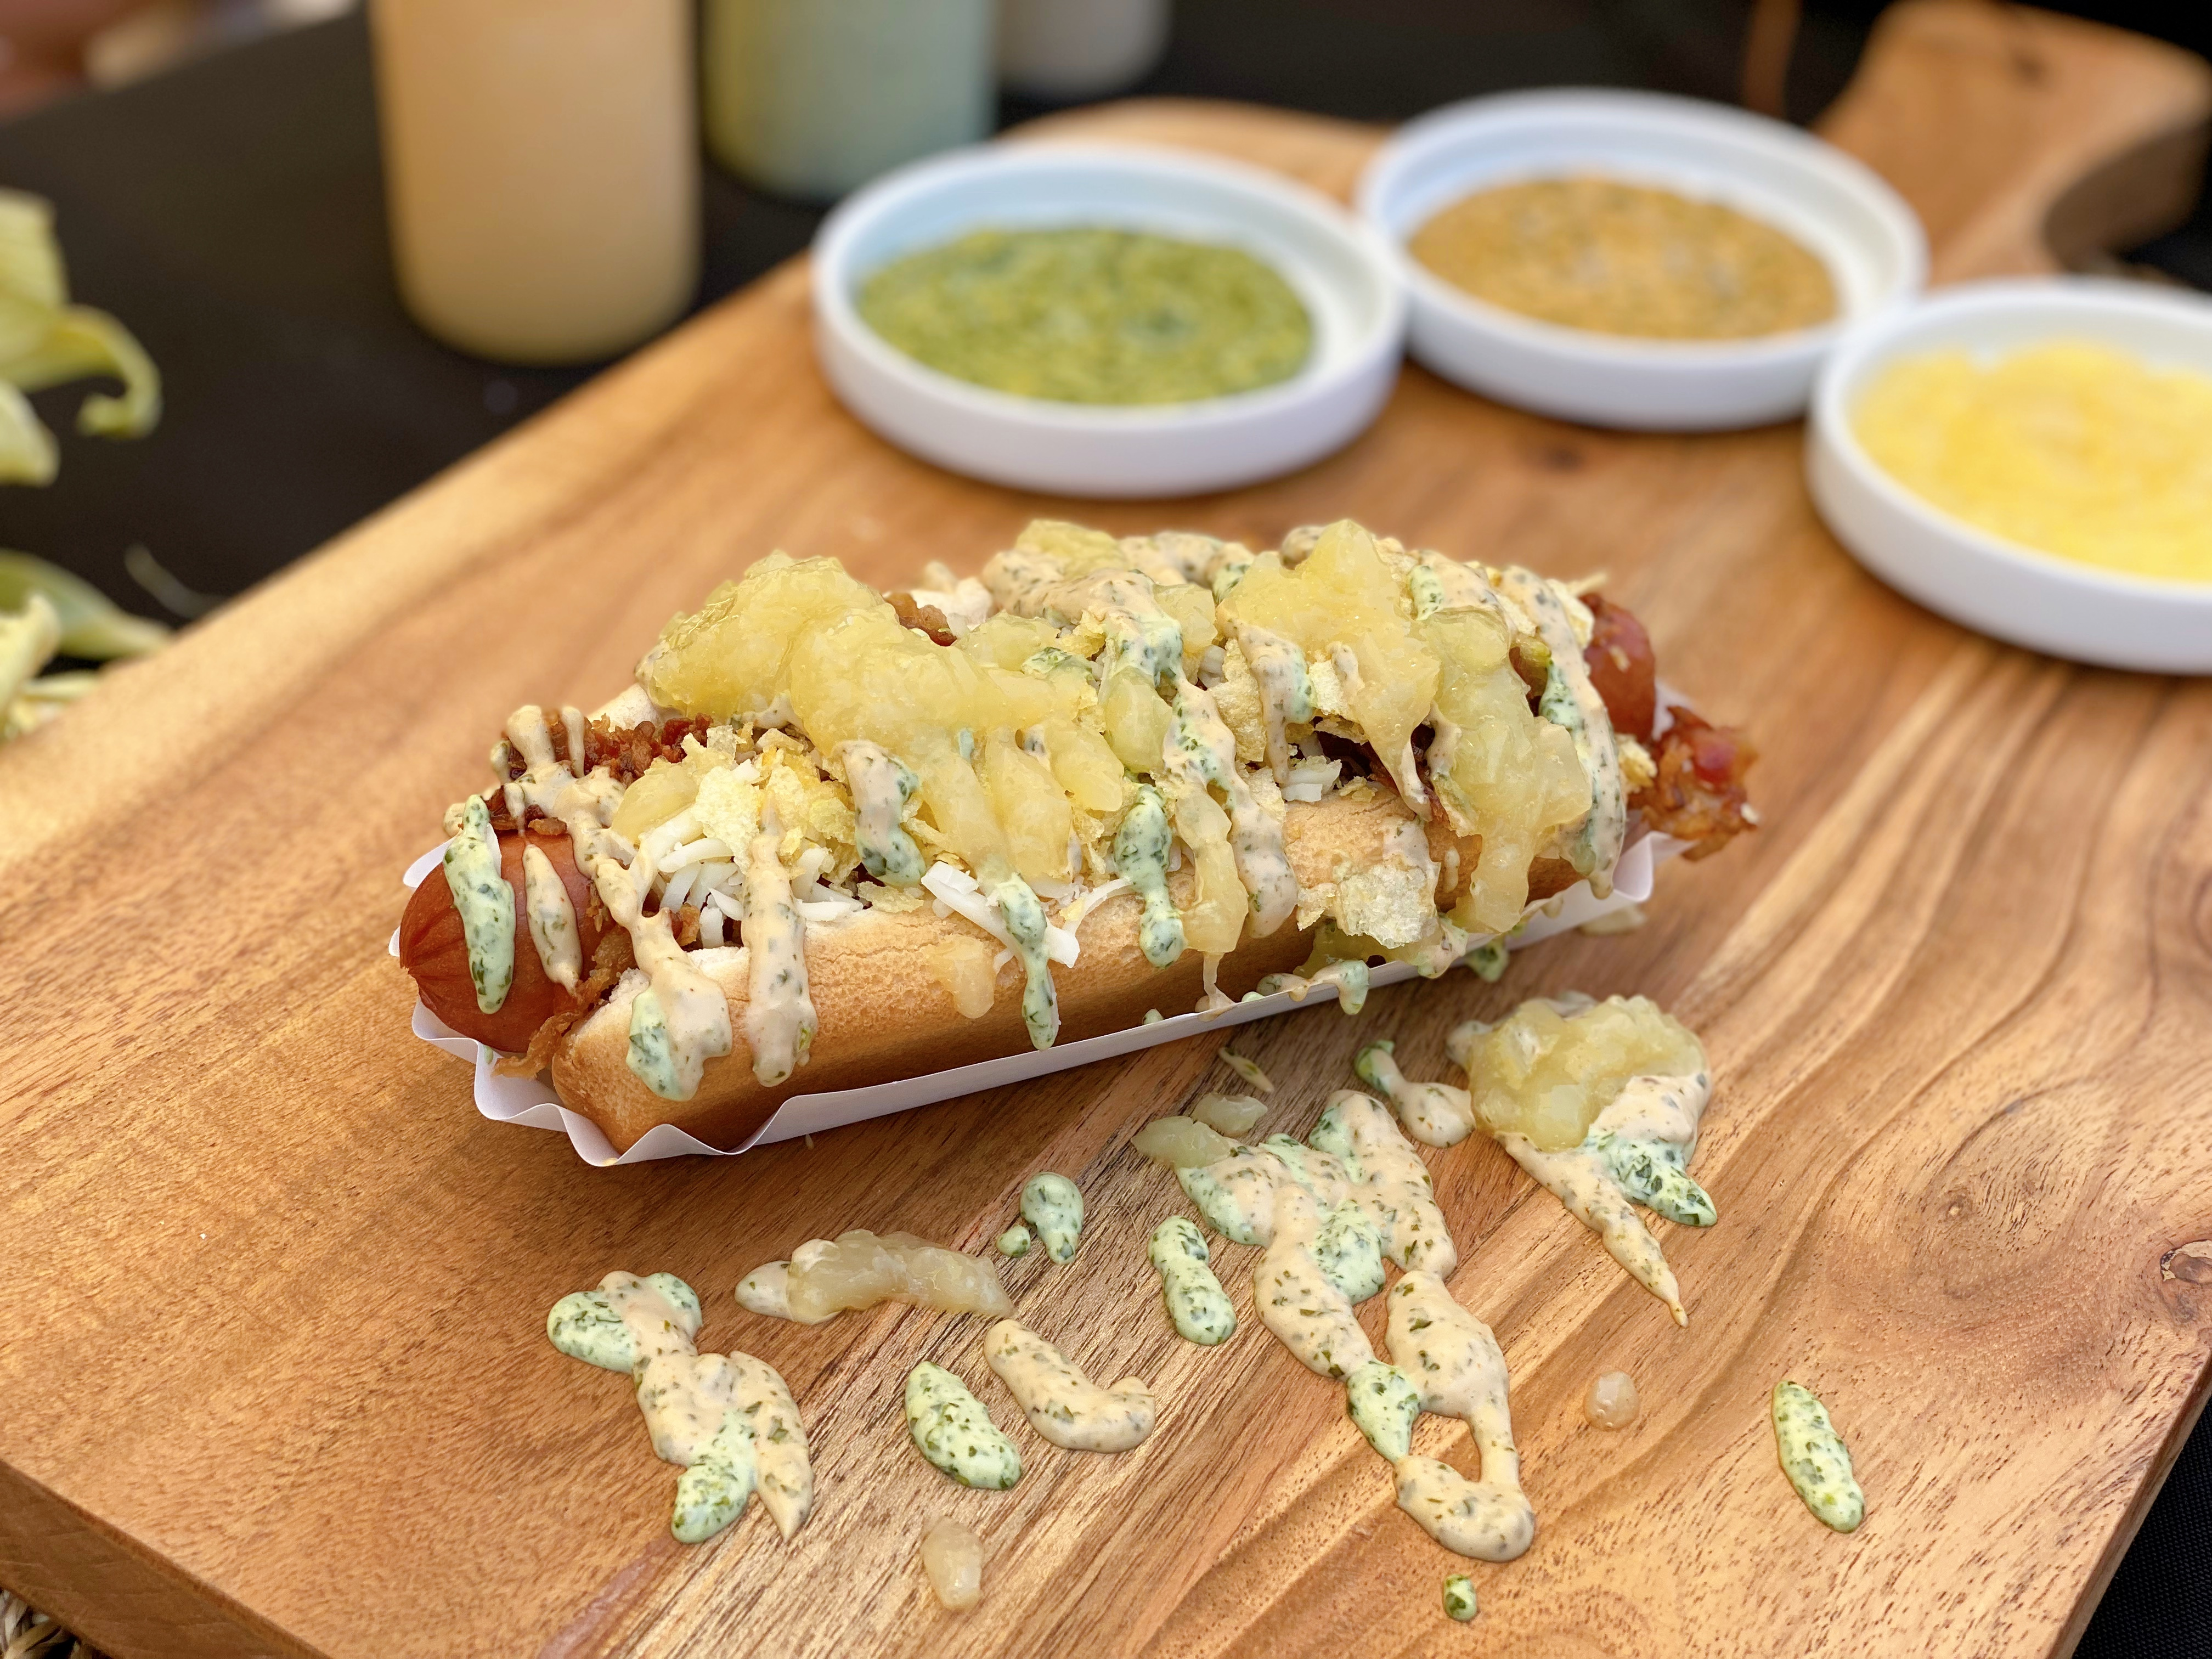 Colombian-style hot dog from WezzArepas sauced up on a wooden board.